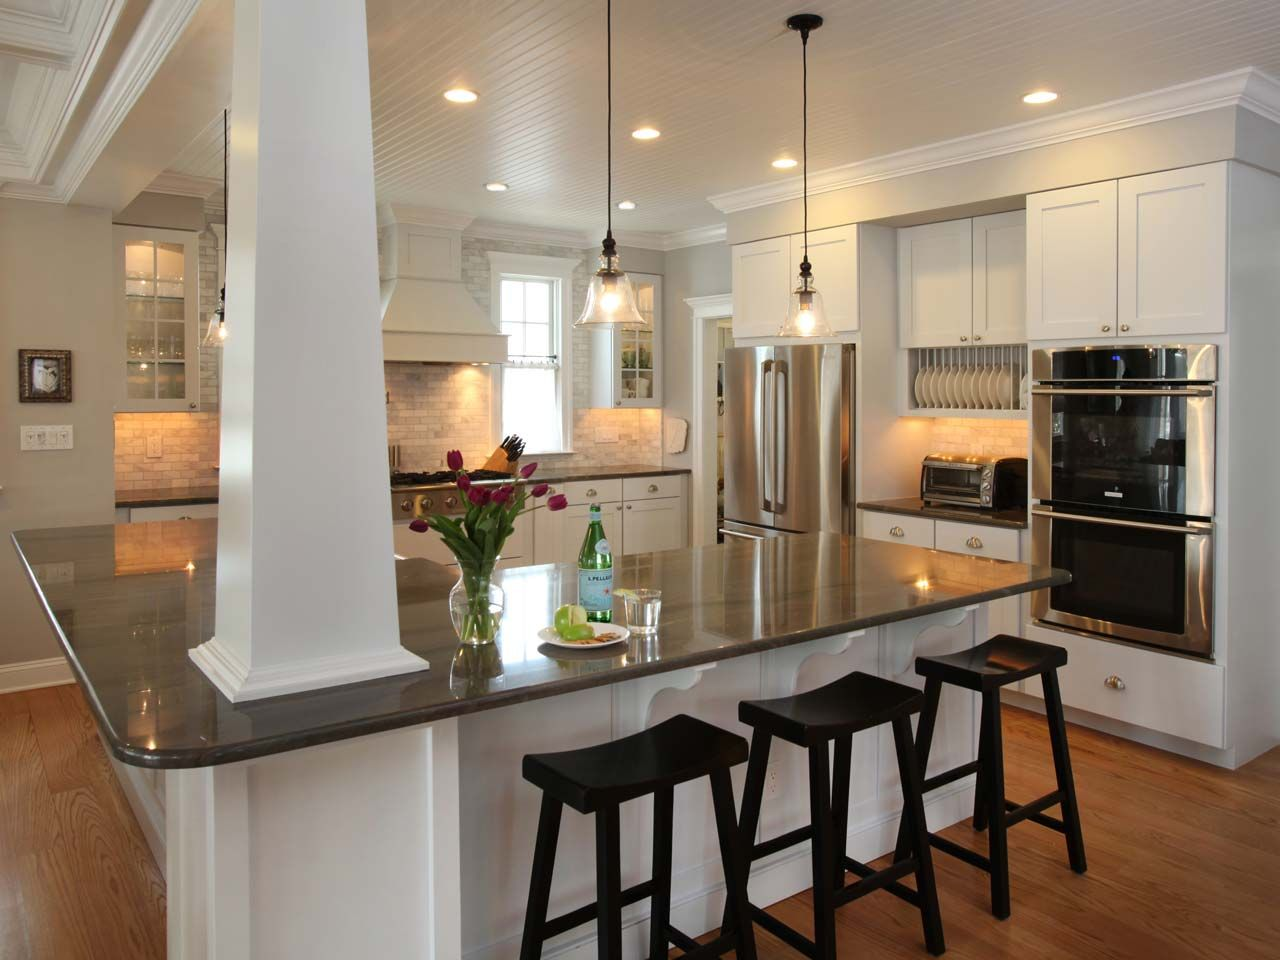 Remodeling Countertops Style Design Images Design Inspiration